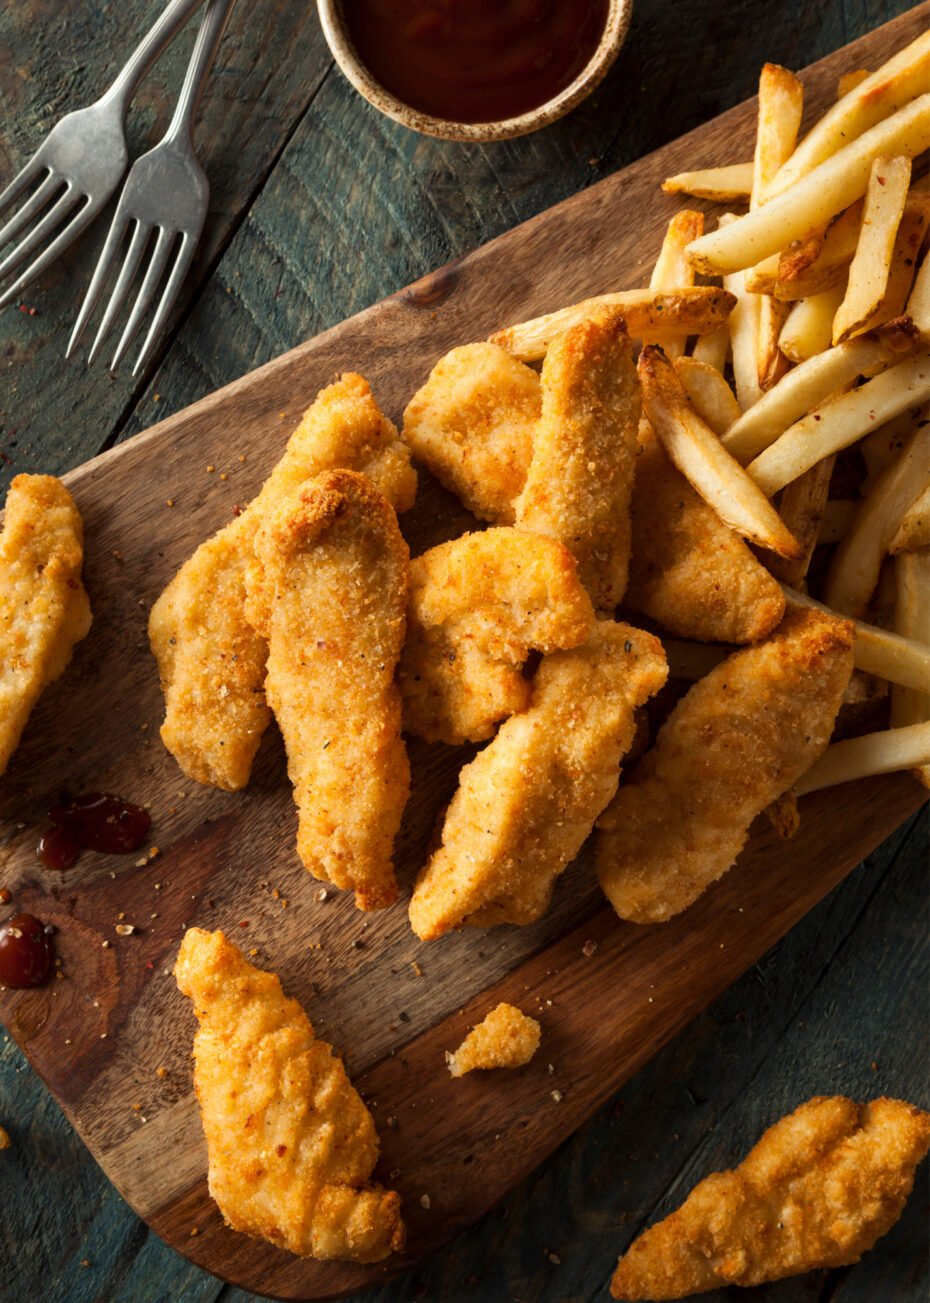 Homemade Fried Chicken Tenders are tender juicy pieces of chicken breast coated buttermilk then seasoned flour to give you great-tasting chicken.